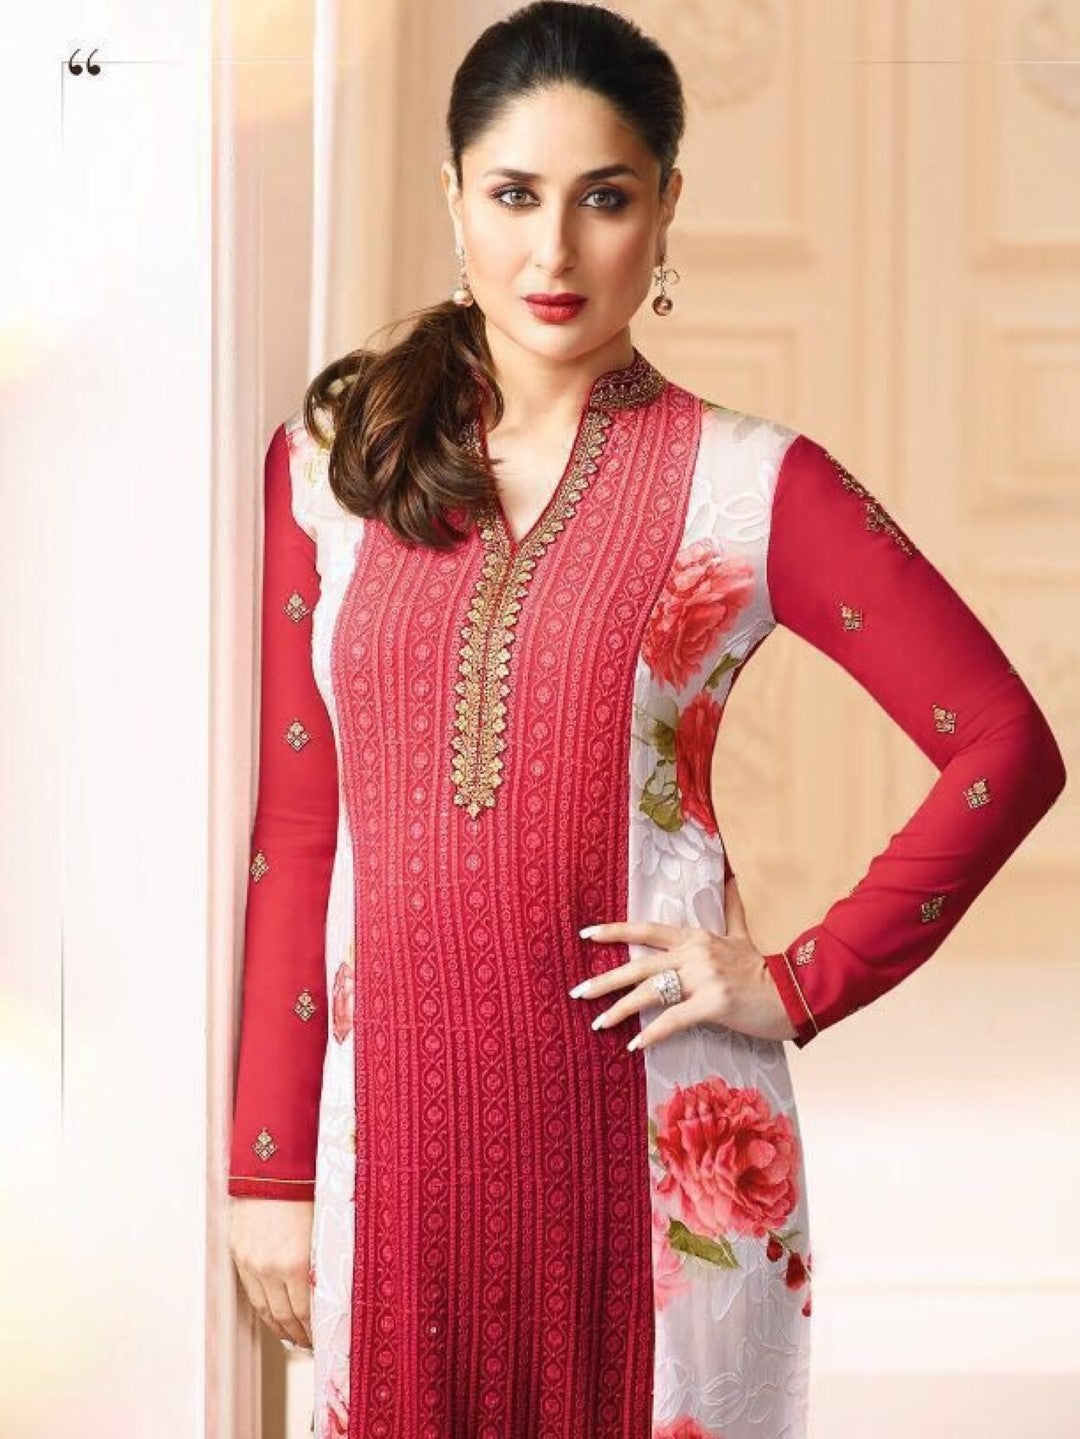 Online shopping for Indian & Pakistani Salwar Kameez Suits - Buy in Sydney, Melbourne, Perth, Brisbane, Australia